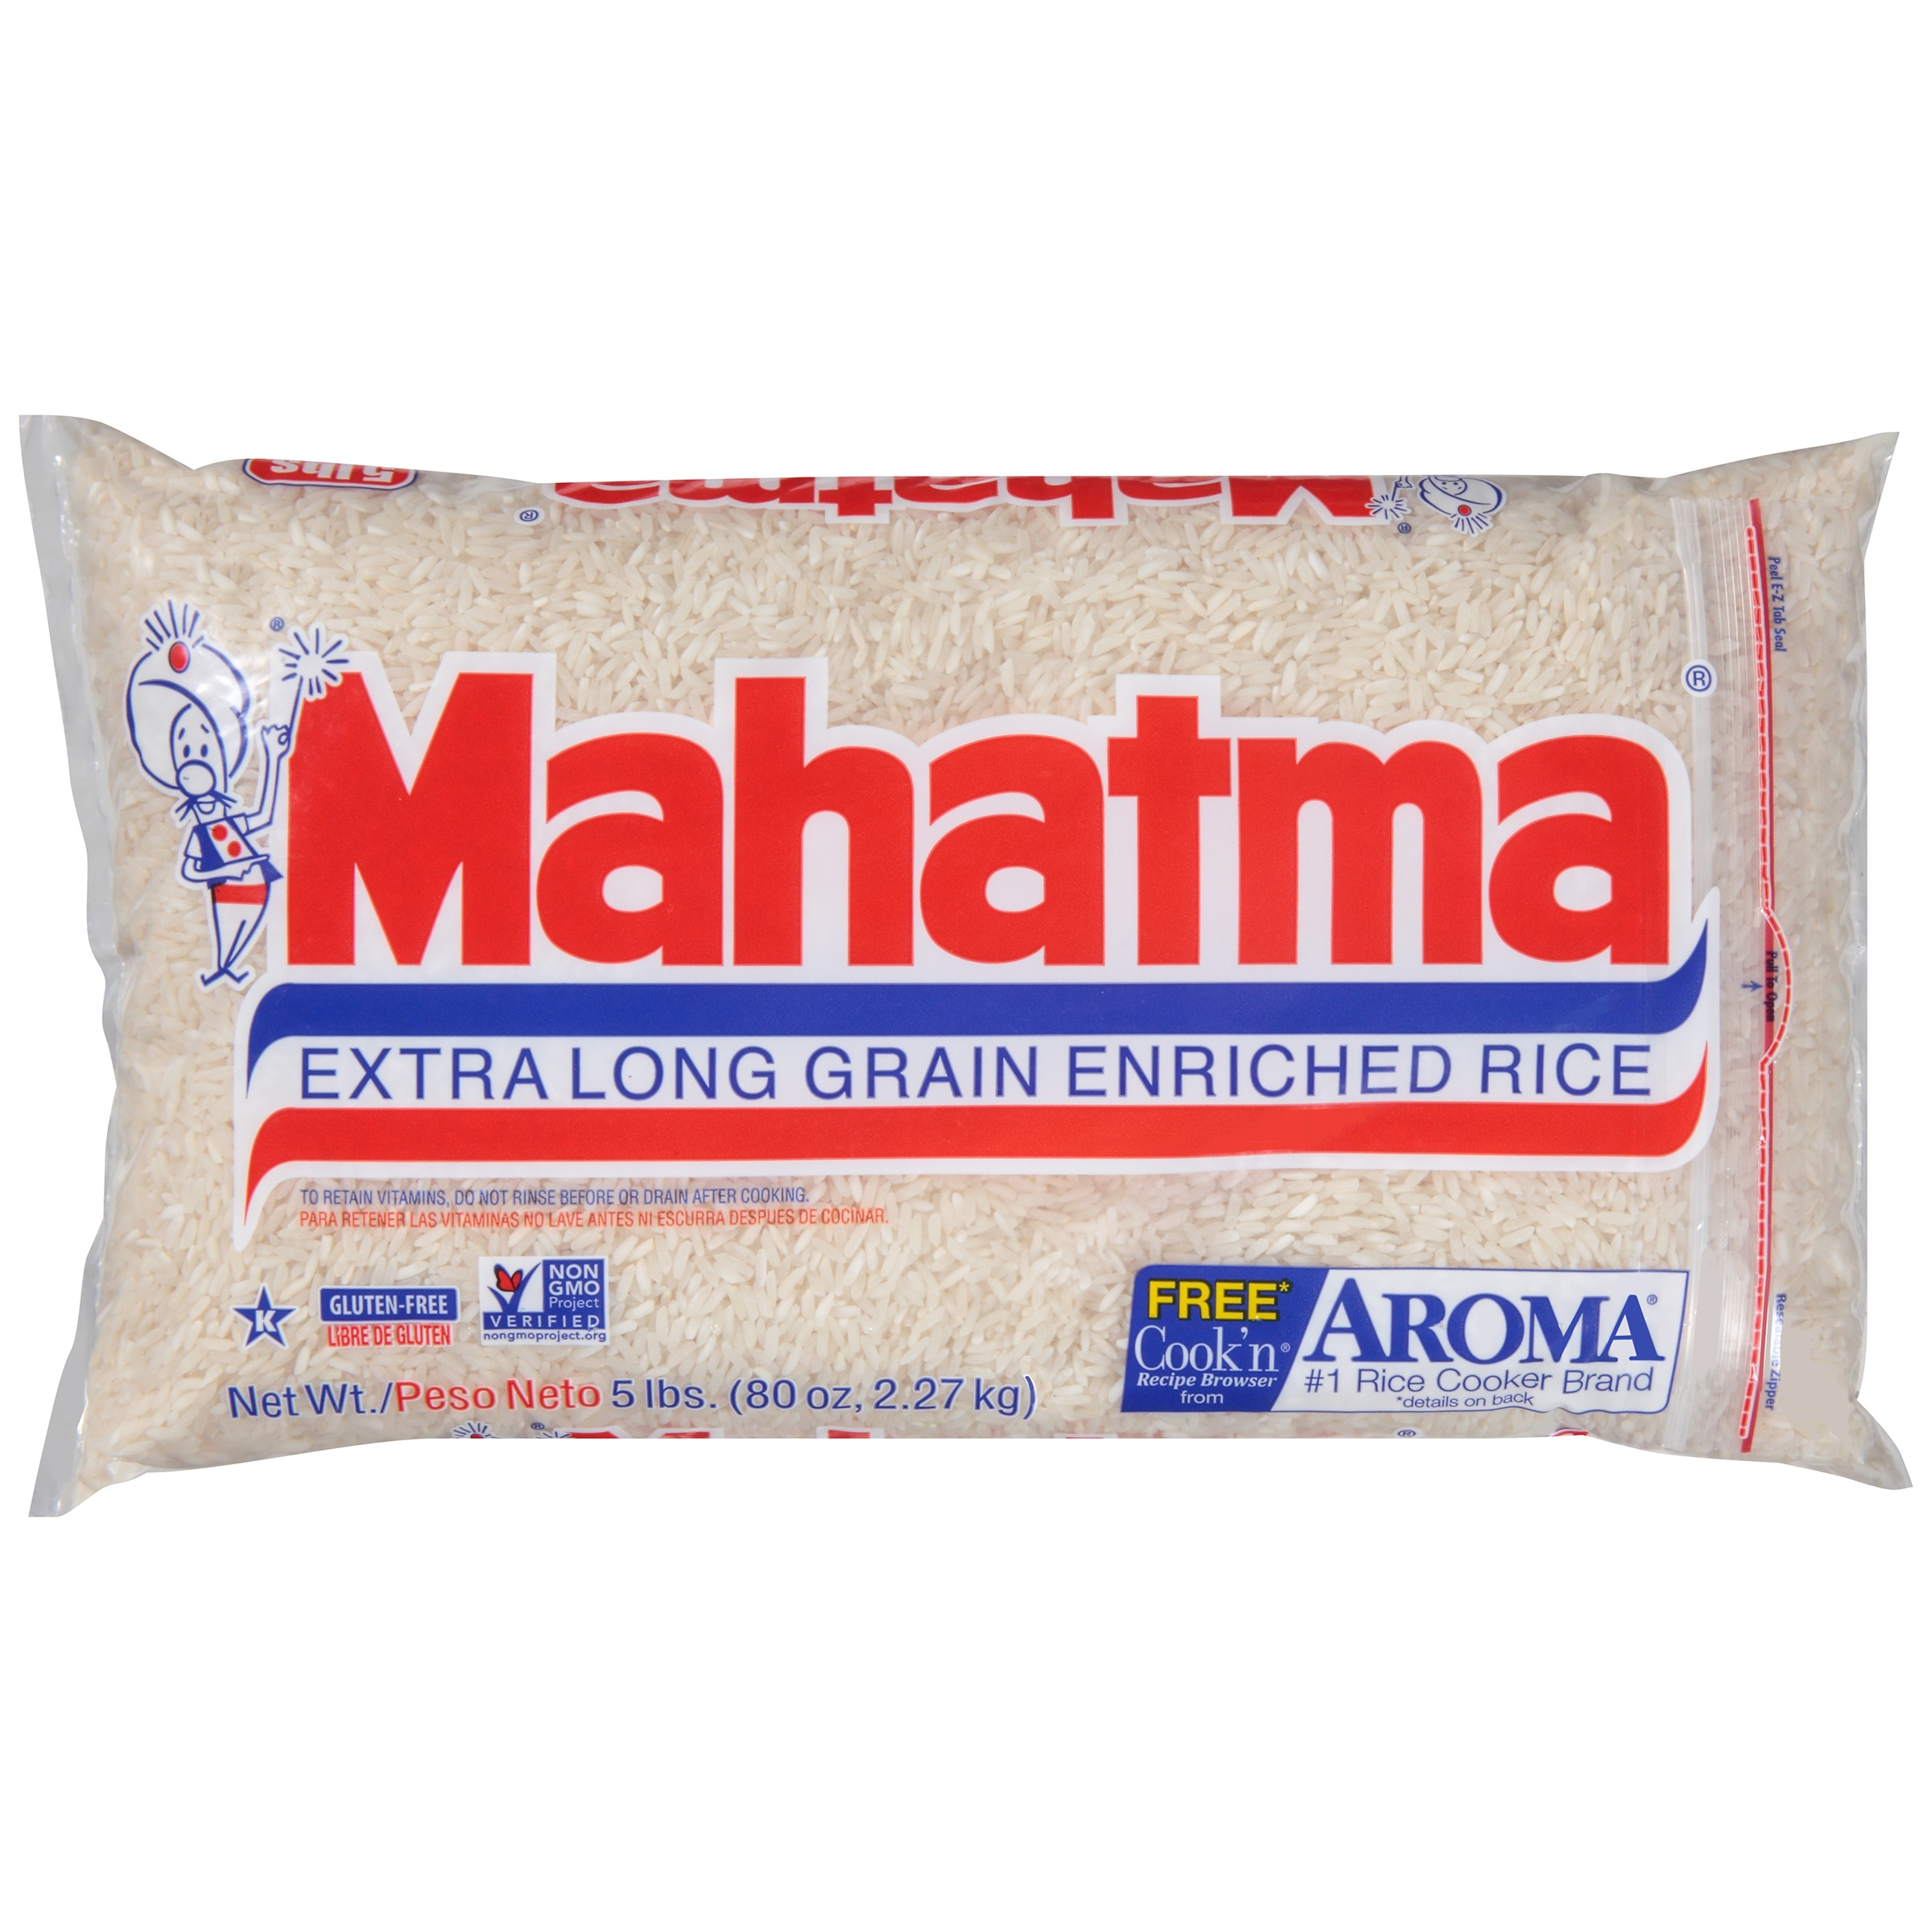 Mahatma® Extra Long Grain Enriched Rice 80 oz. Bag